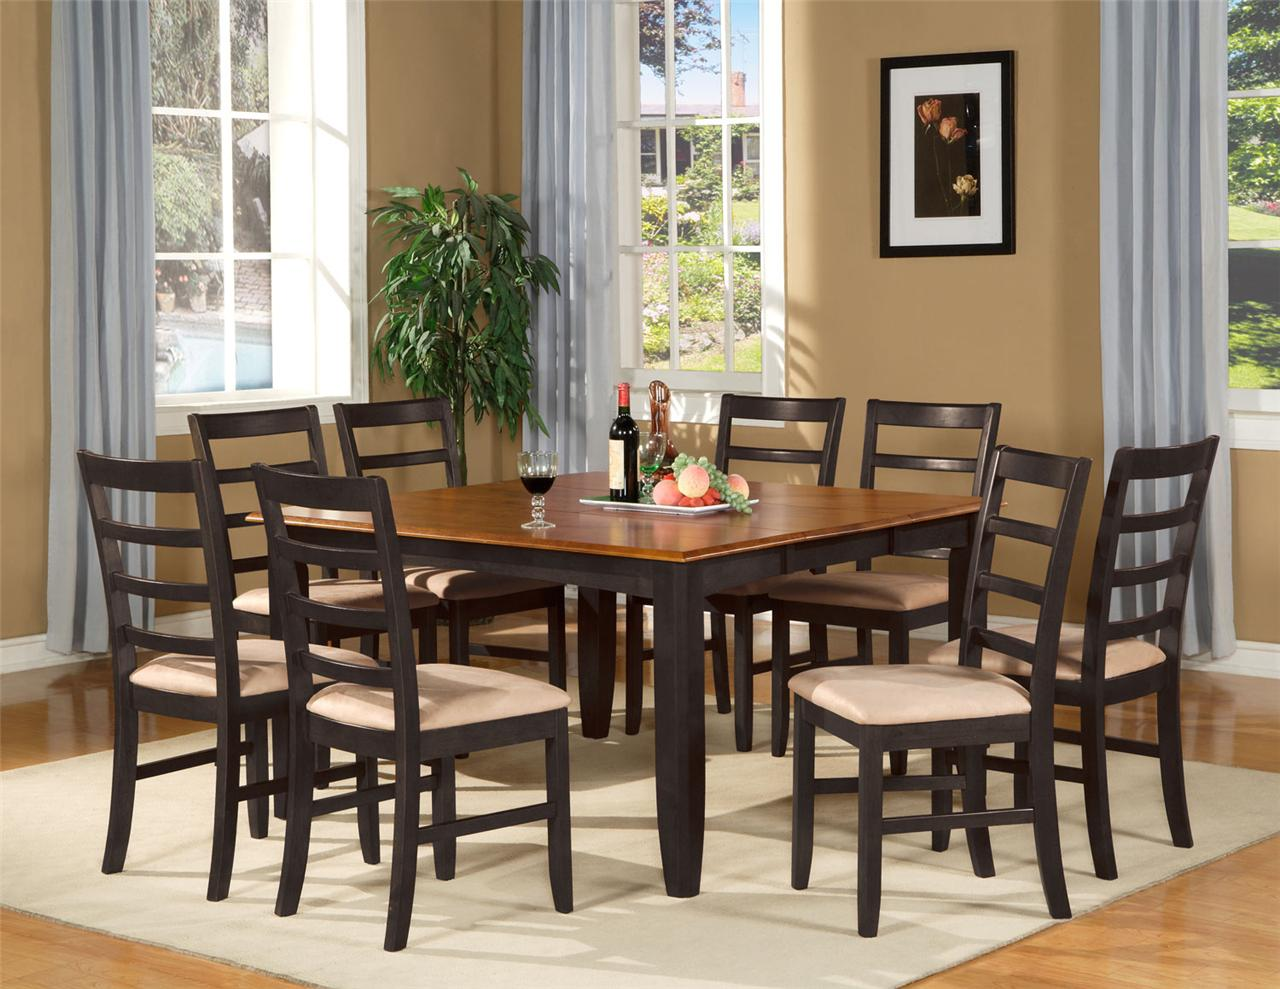 9 pc square dinette dining room table set and 8 chairs ebay for Dining room table and bench set